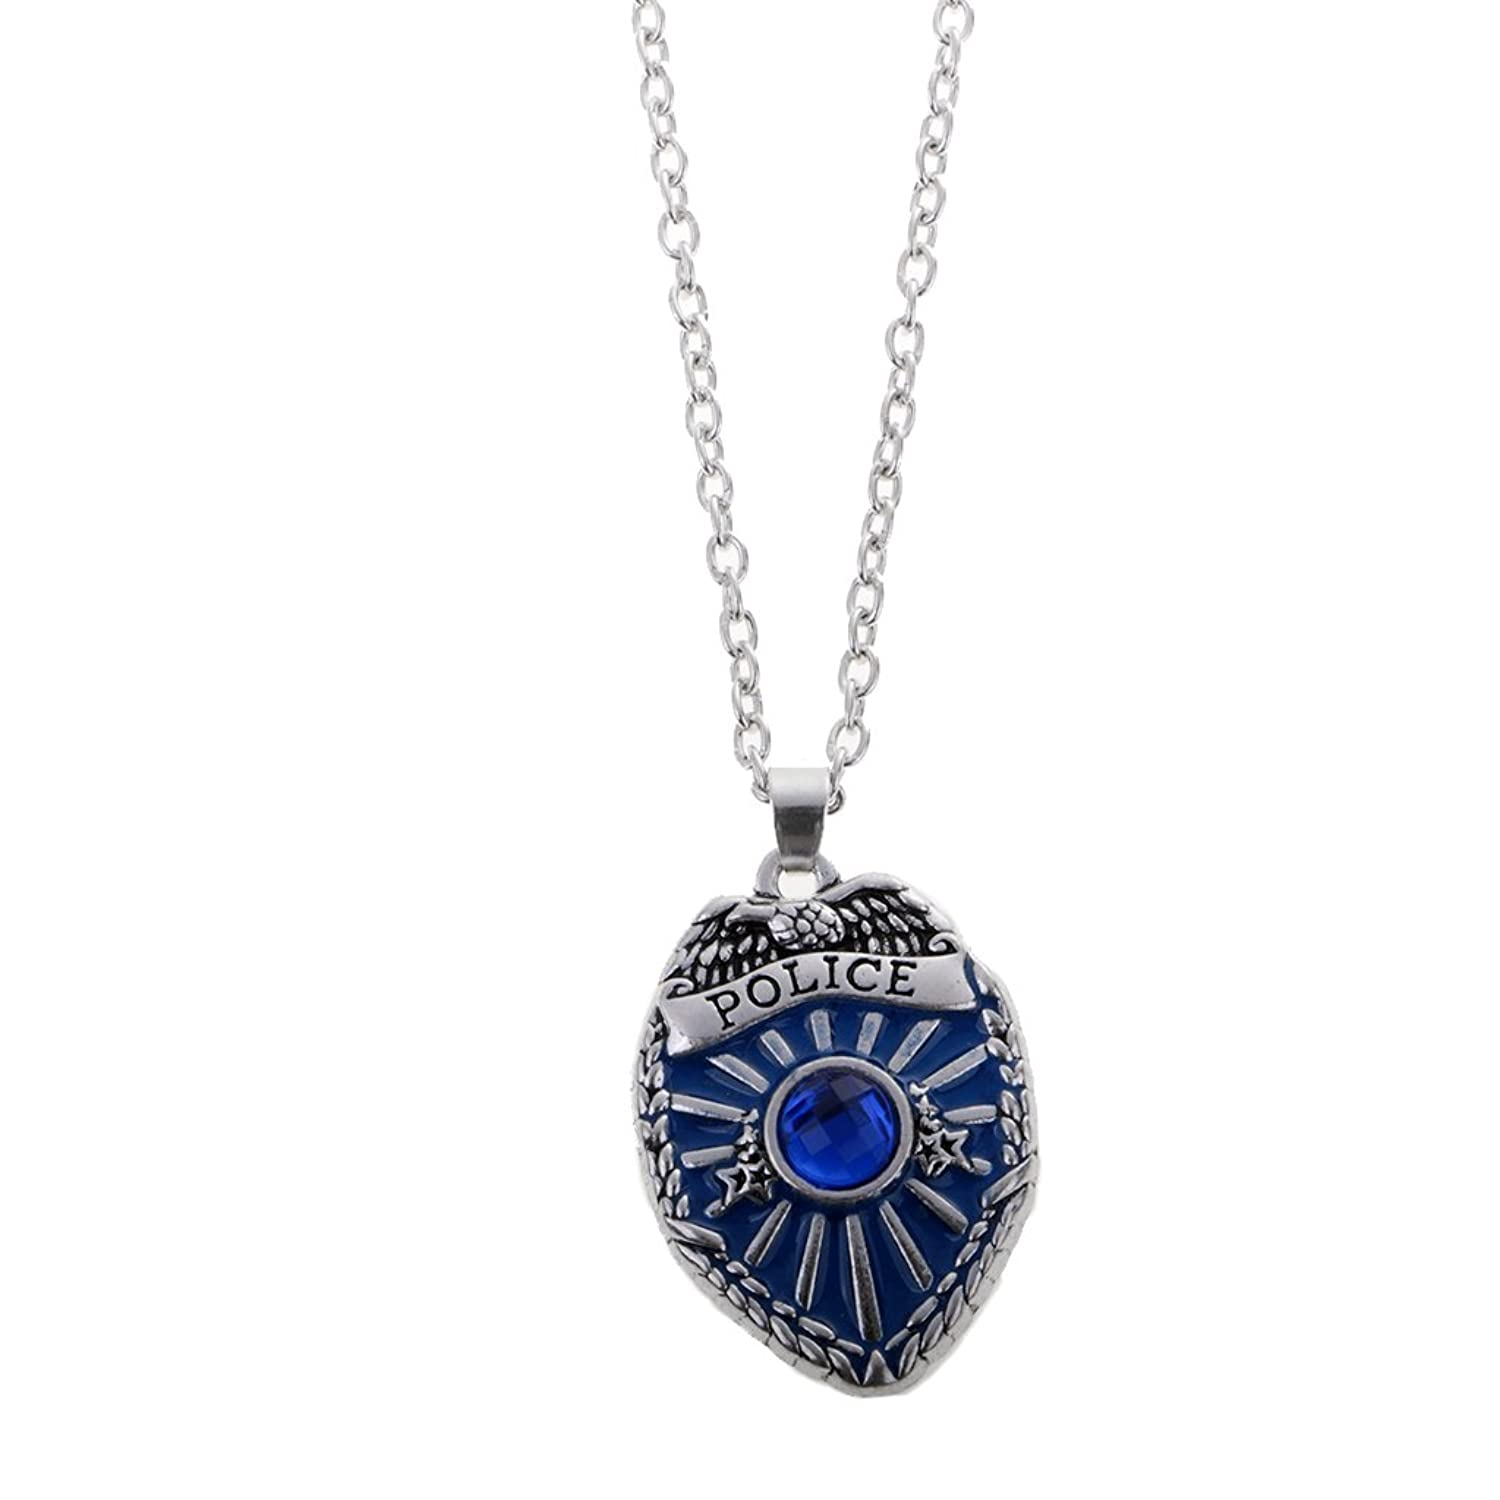 firefighter police ems first collections page responders shineon pendant necklace love badge